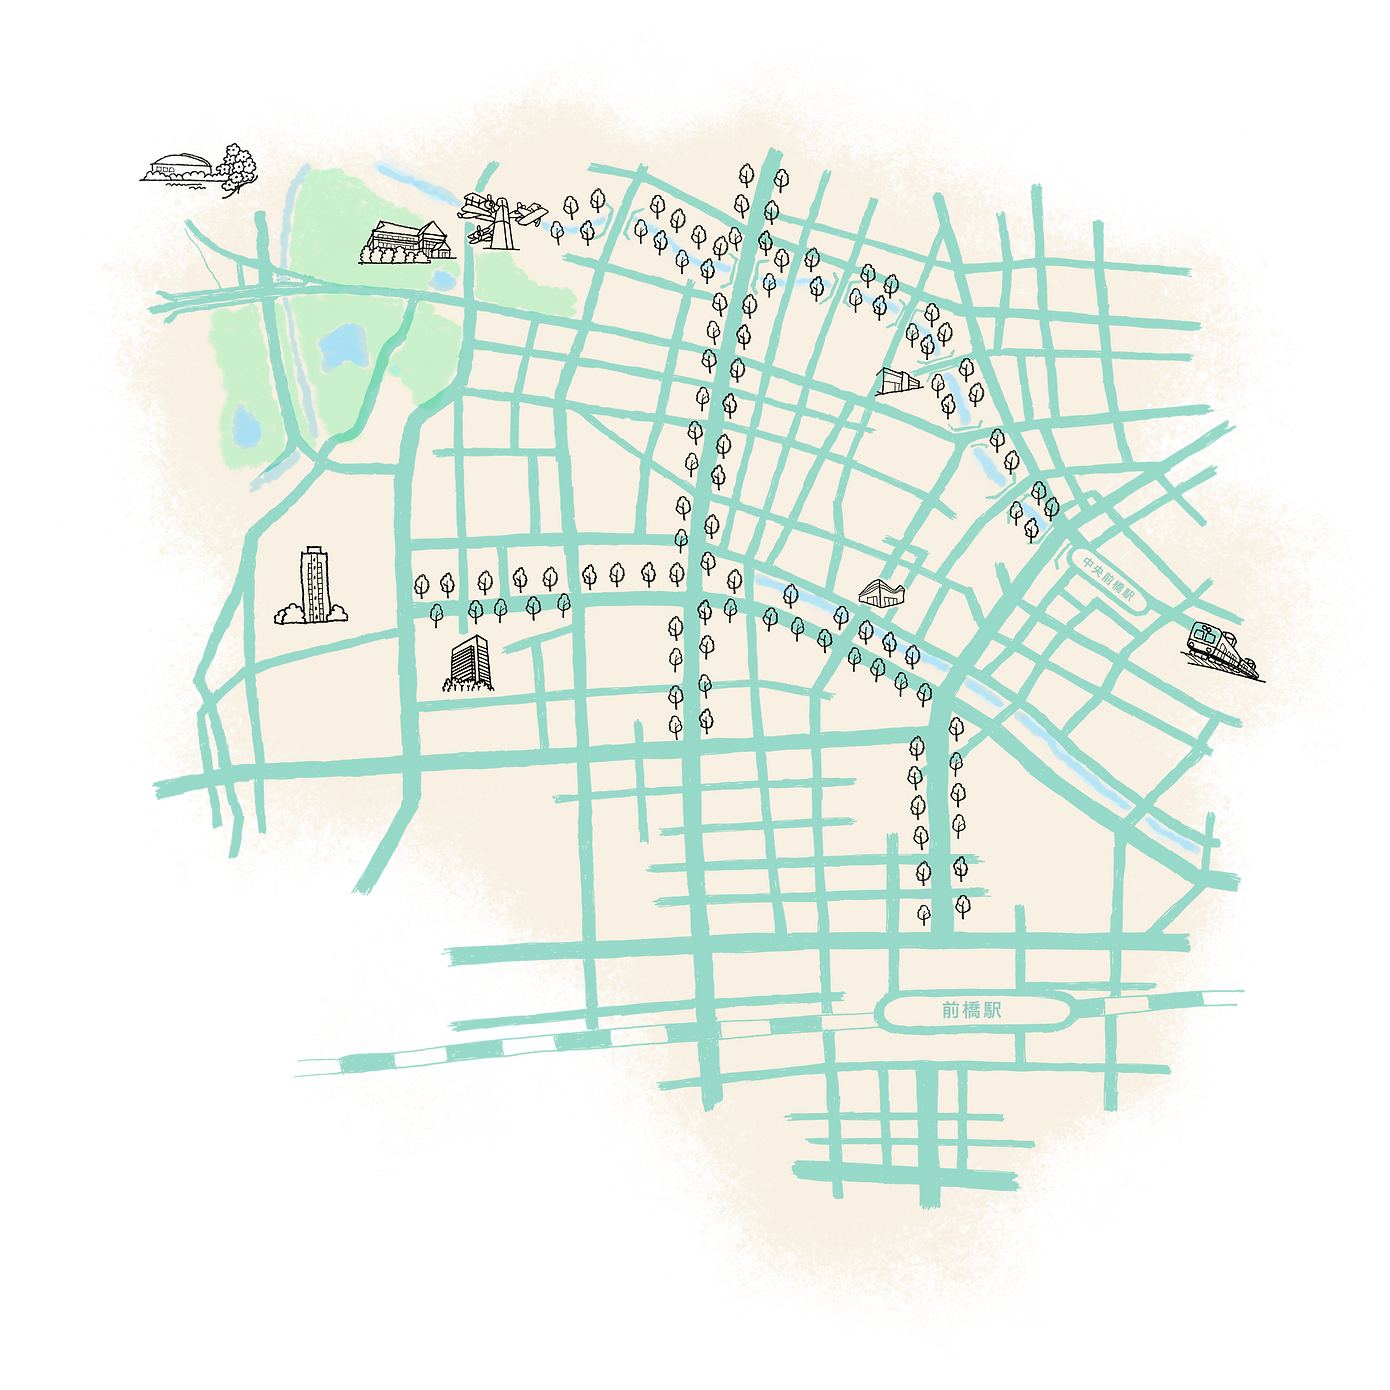 maebashi_map2.png